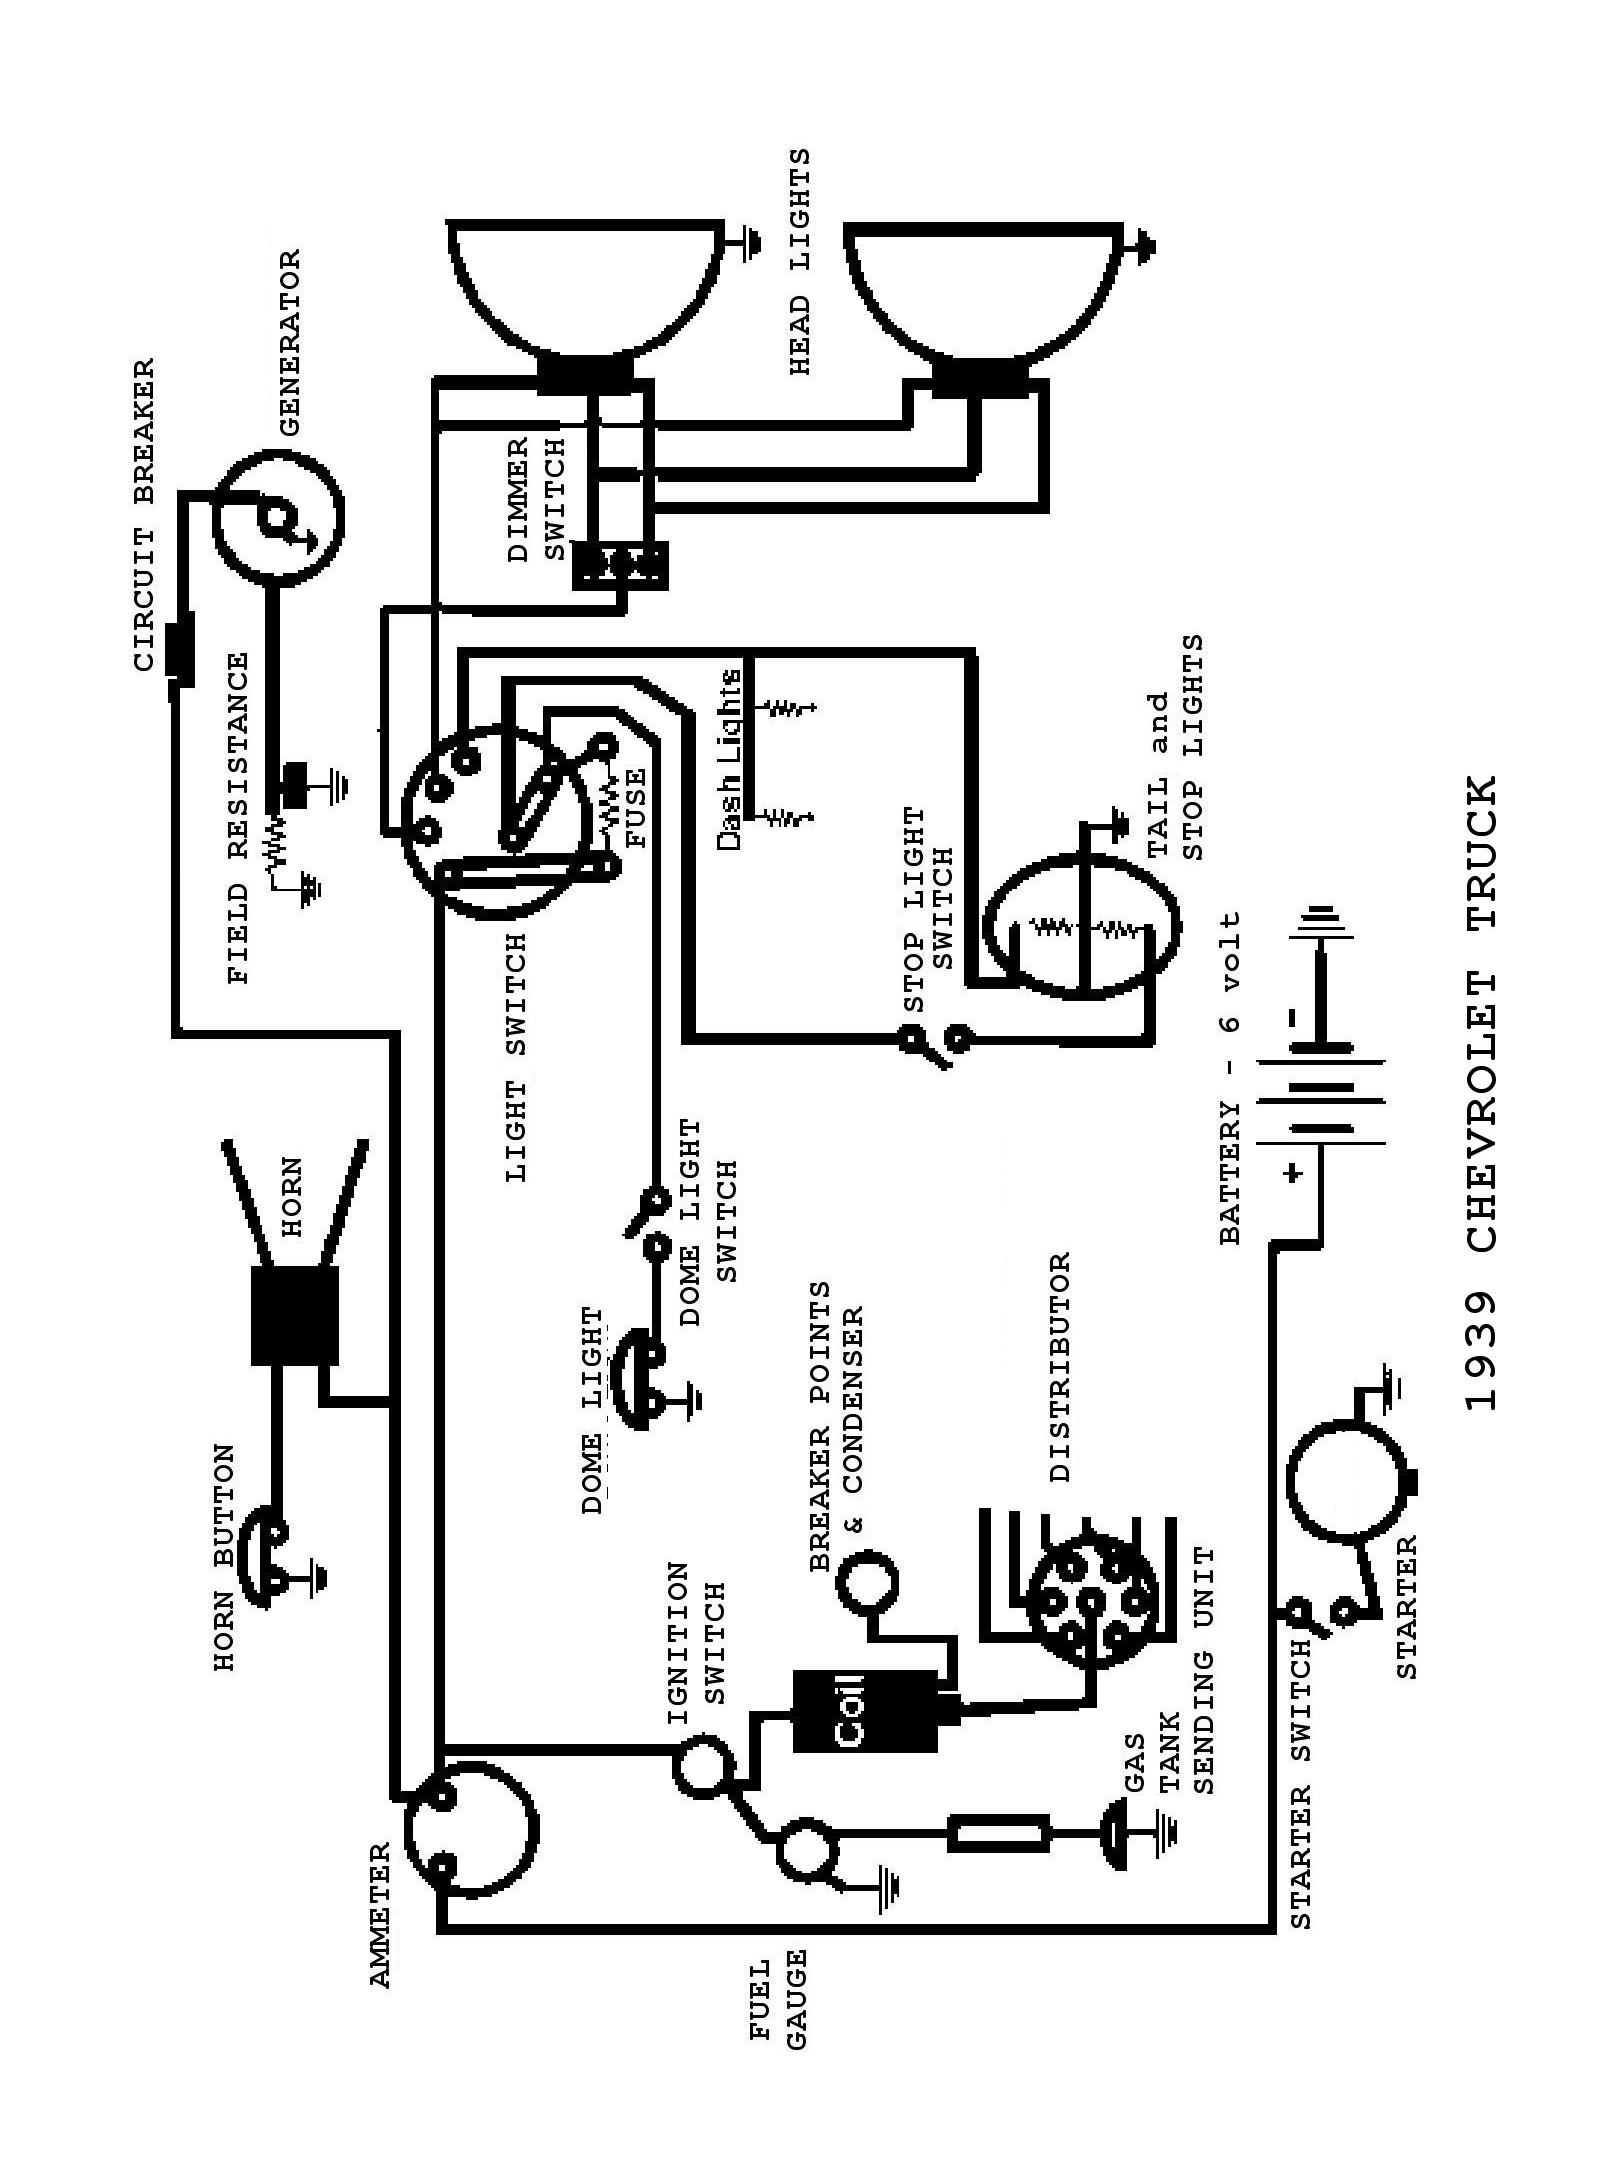 Ford 1959 Ignition Wiring - Wiring Schematics Dash Light Wiring Diagram F on